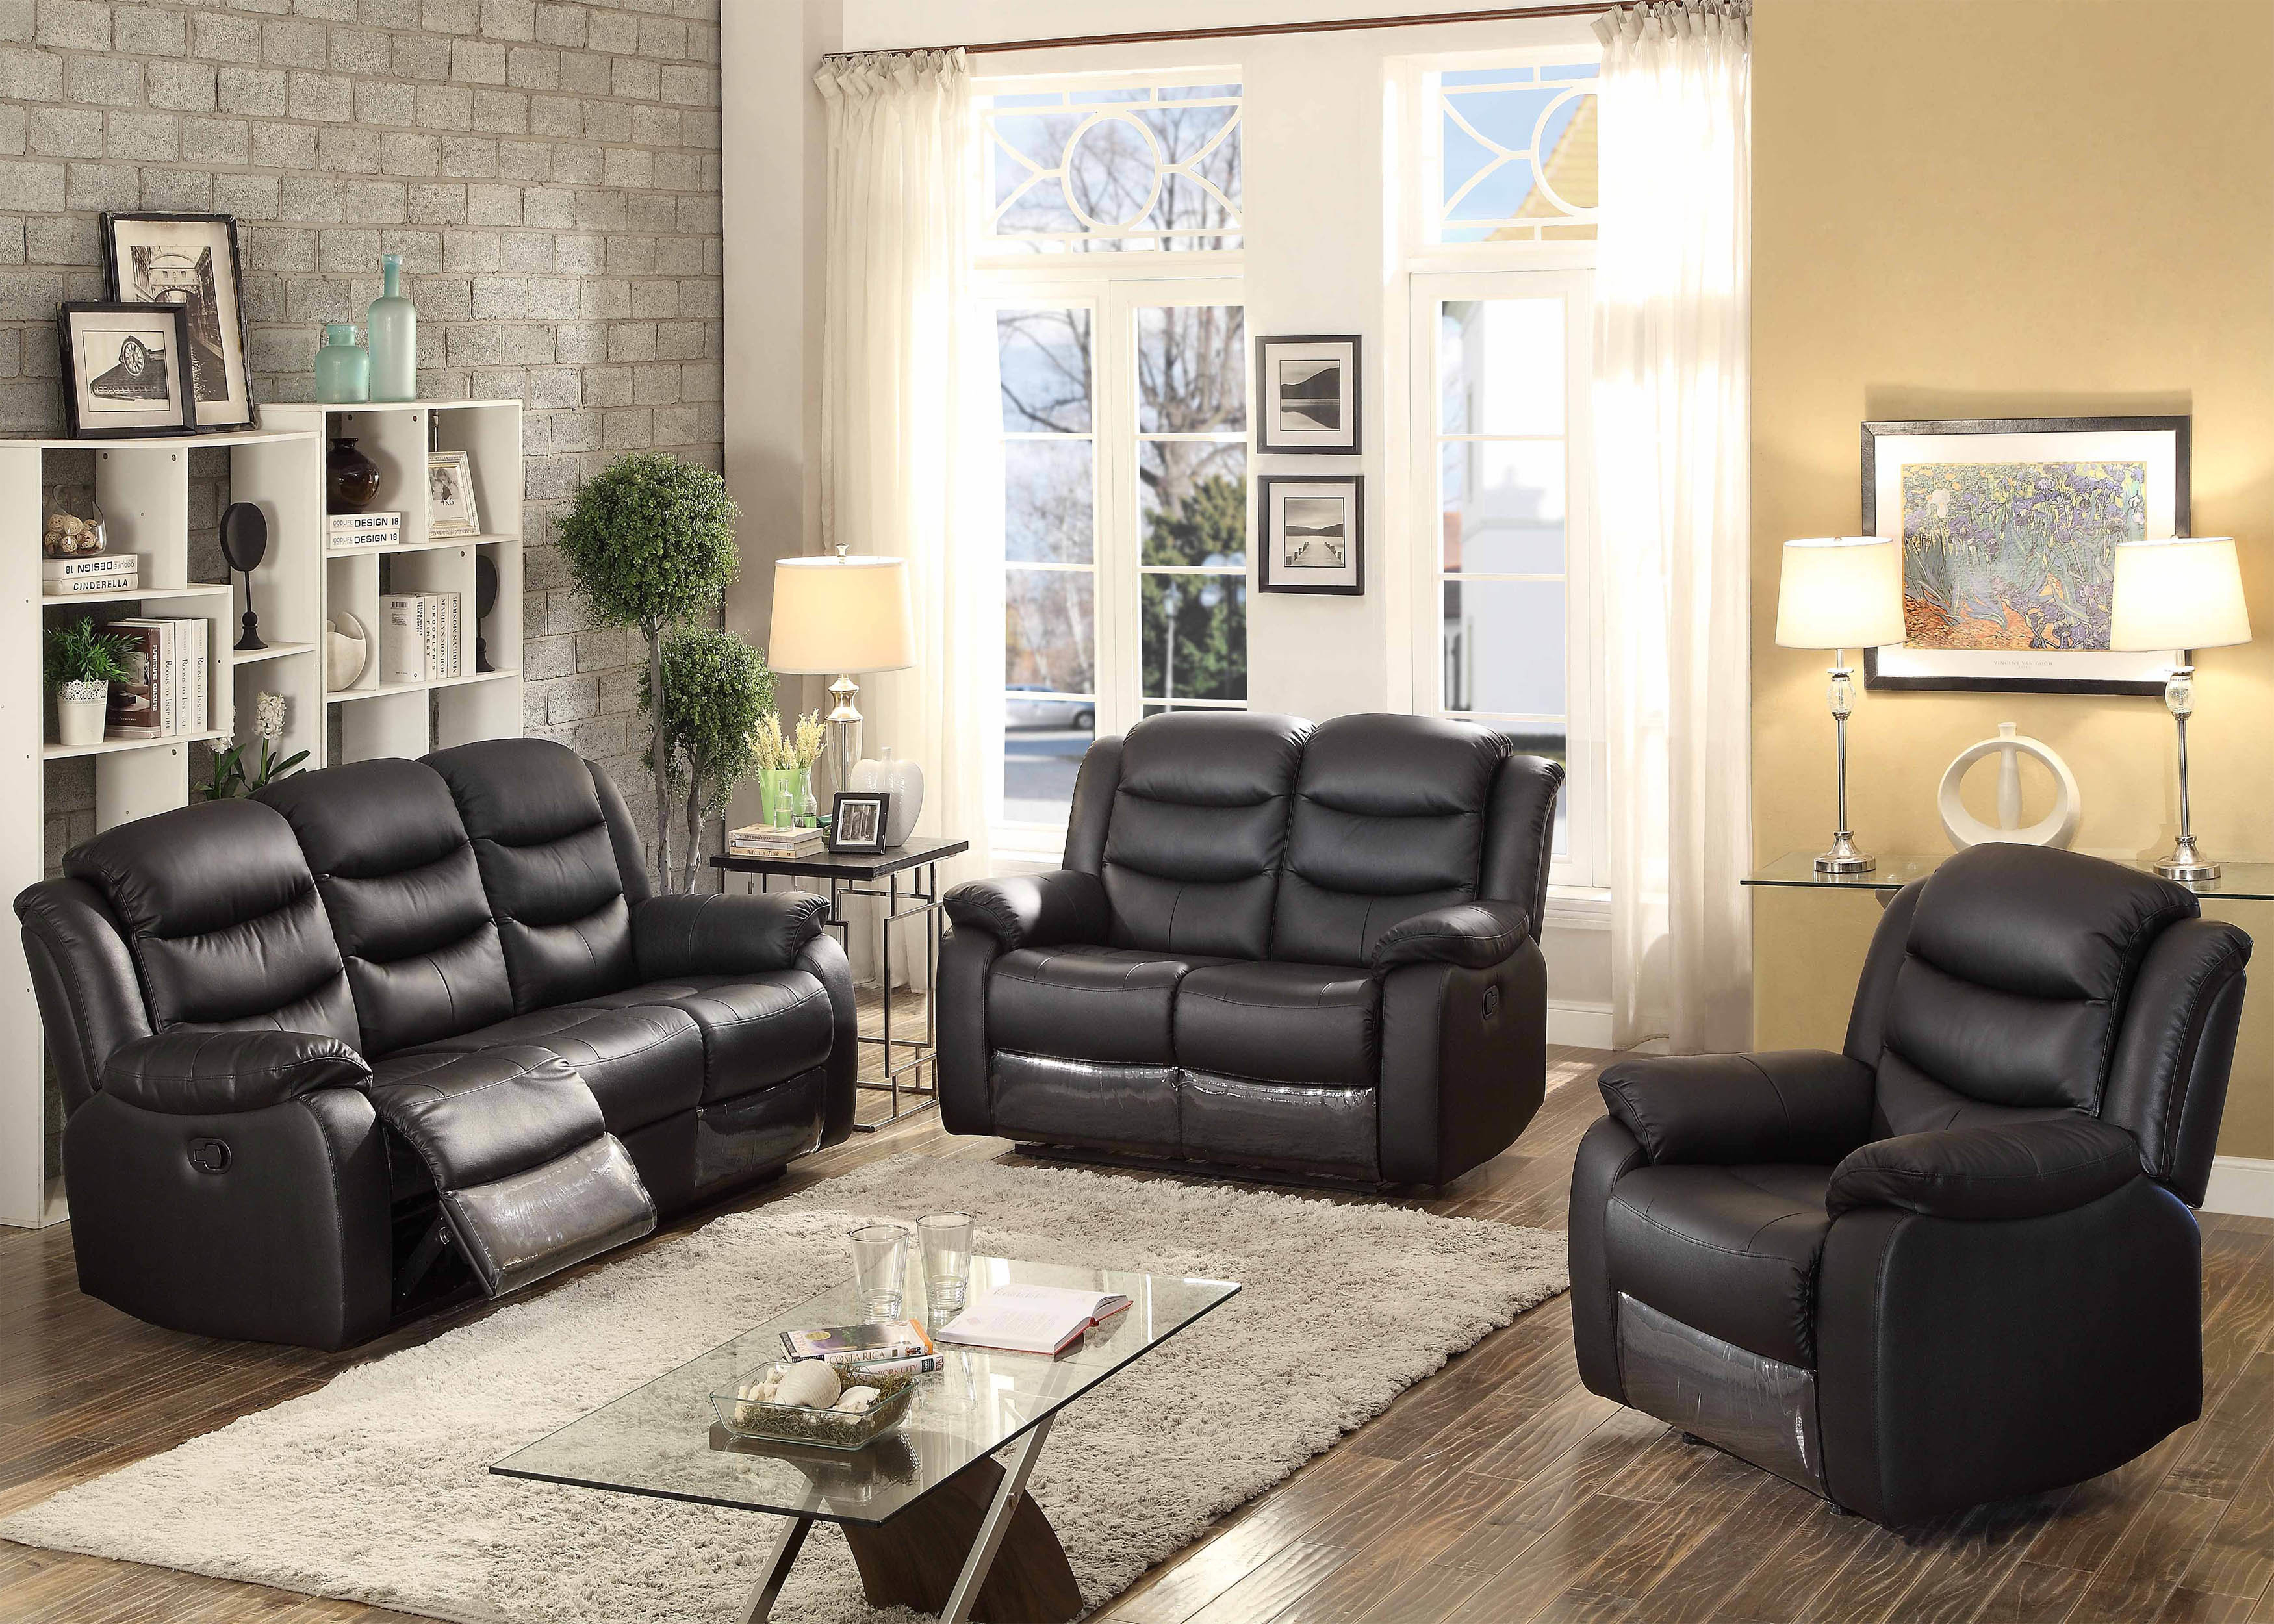 Ac Pacific Bennett Reclining 3 Piece Leather Living Room Set Wayfair intended for 3 Piece Leather Reclining Living Room Set